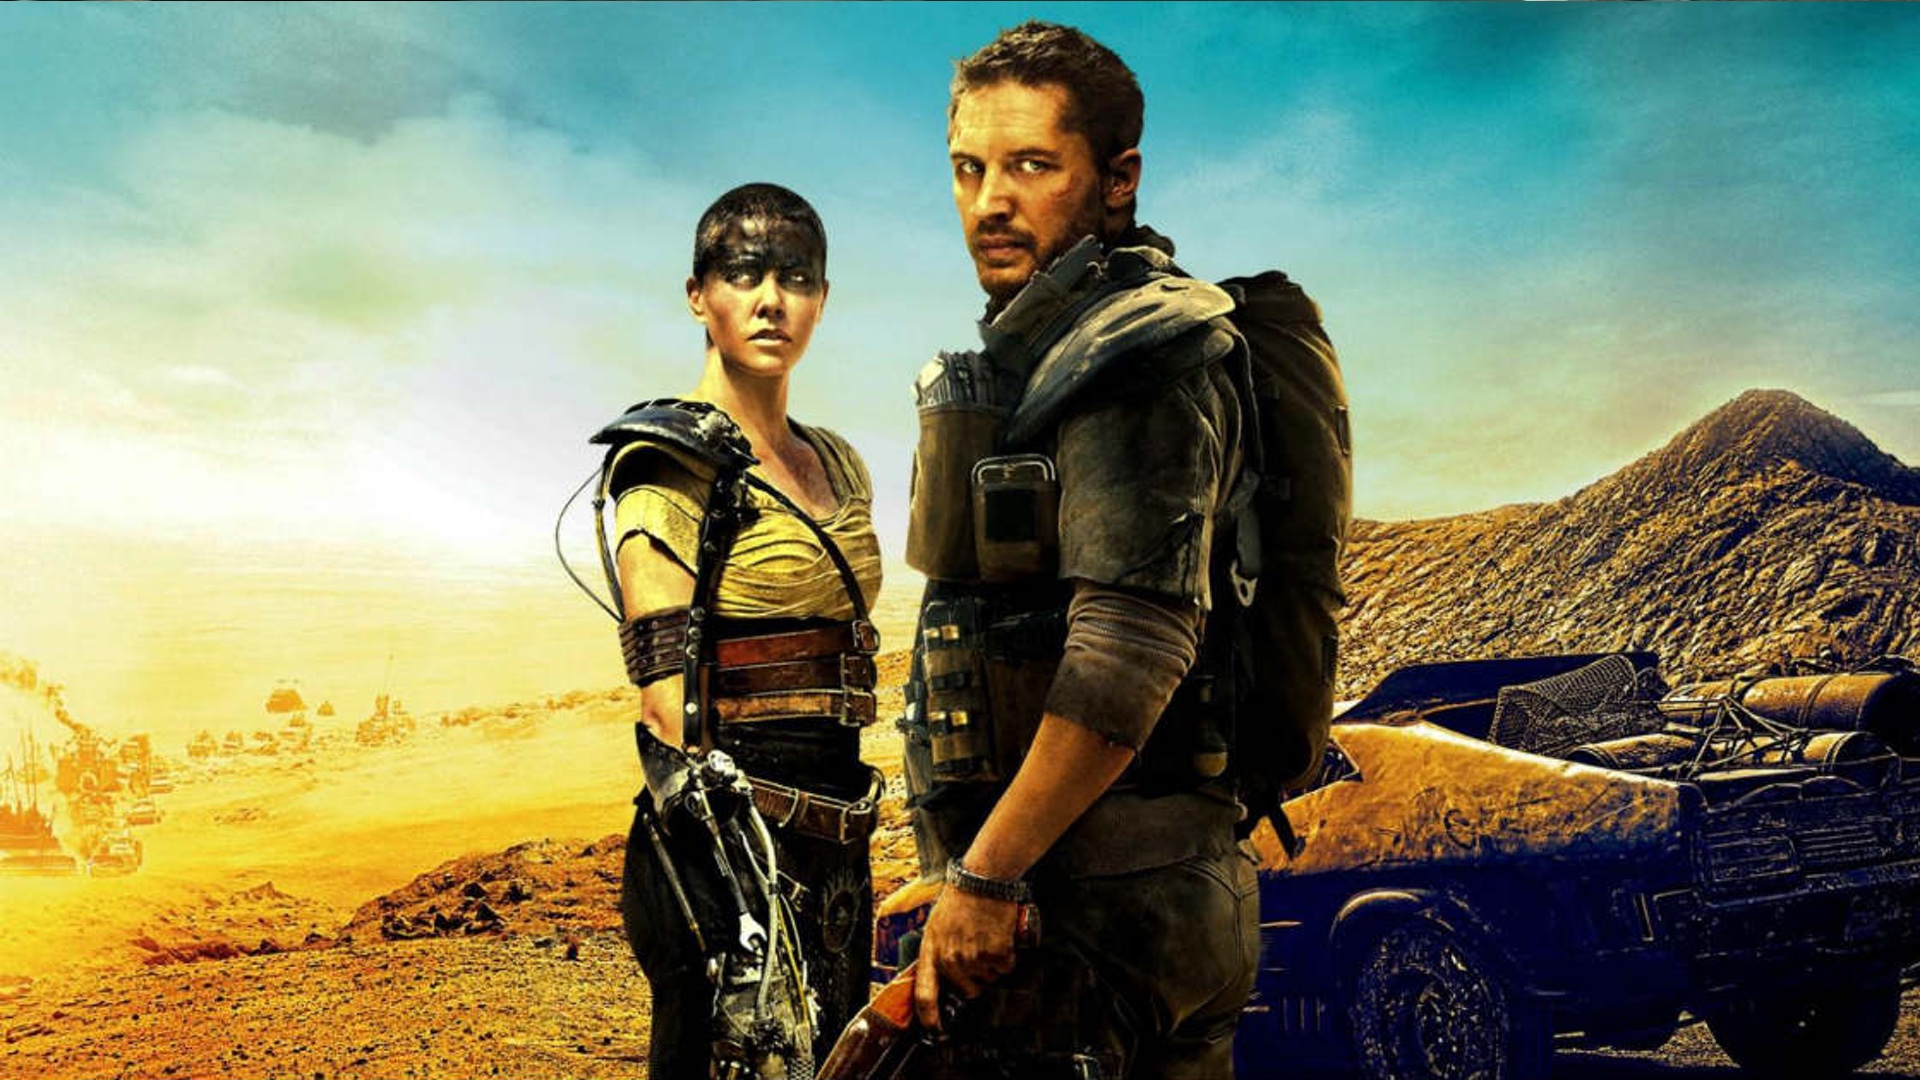 George Miller Says The Long Awaited Mad Max Fury Road Sequels Are